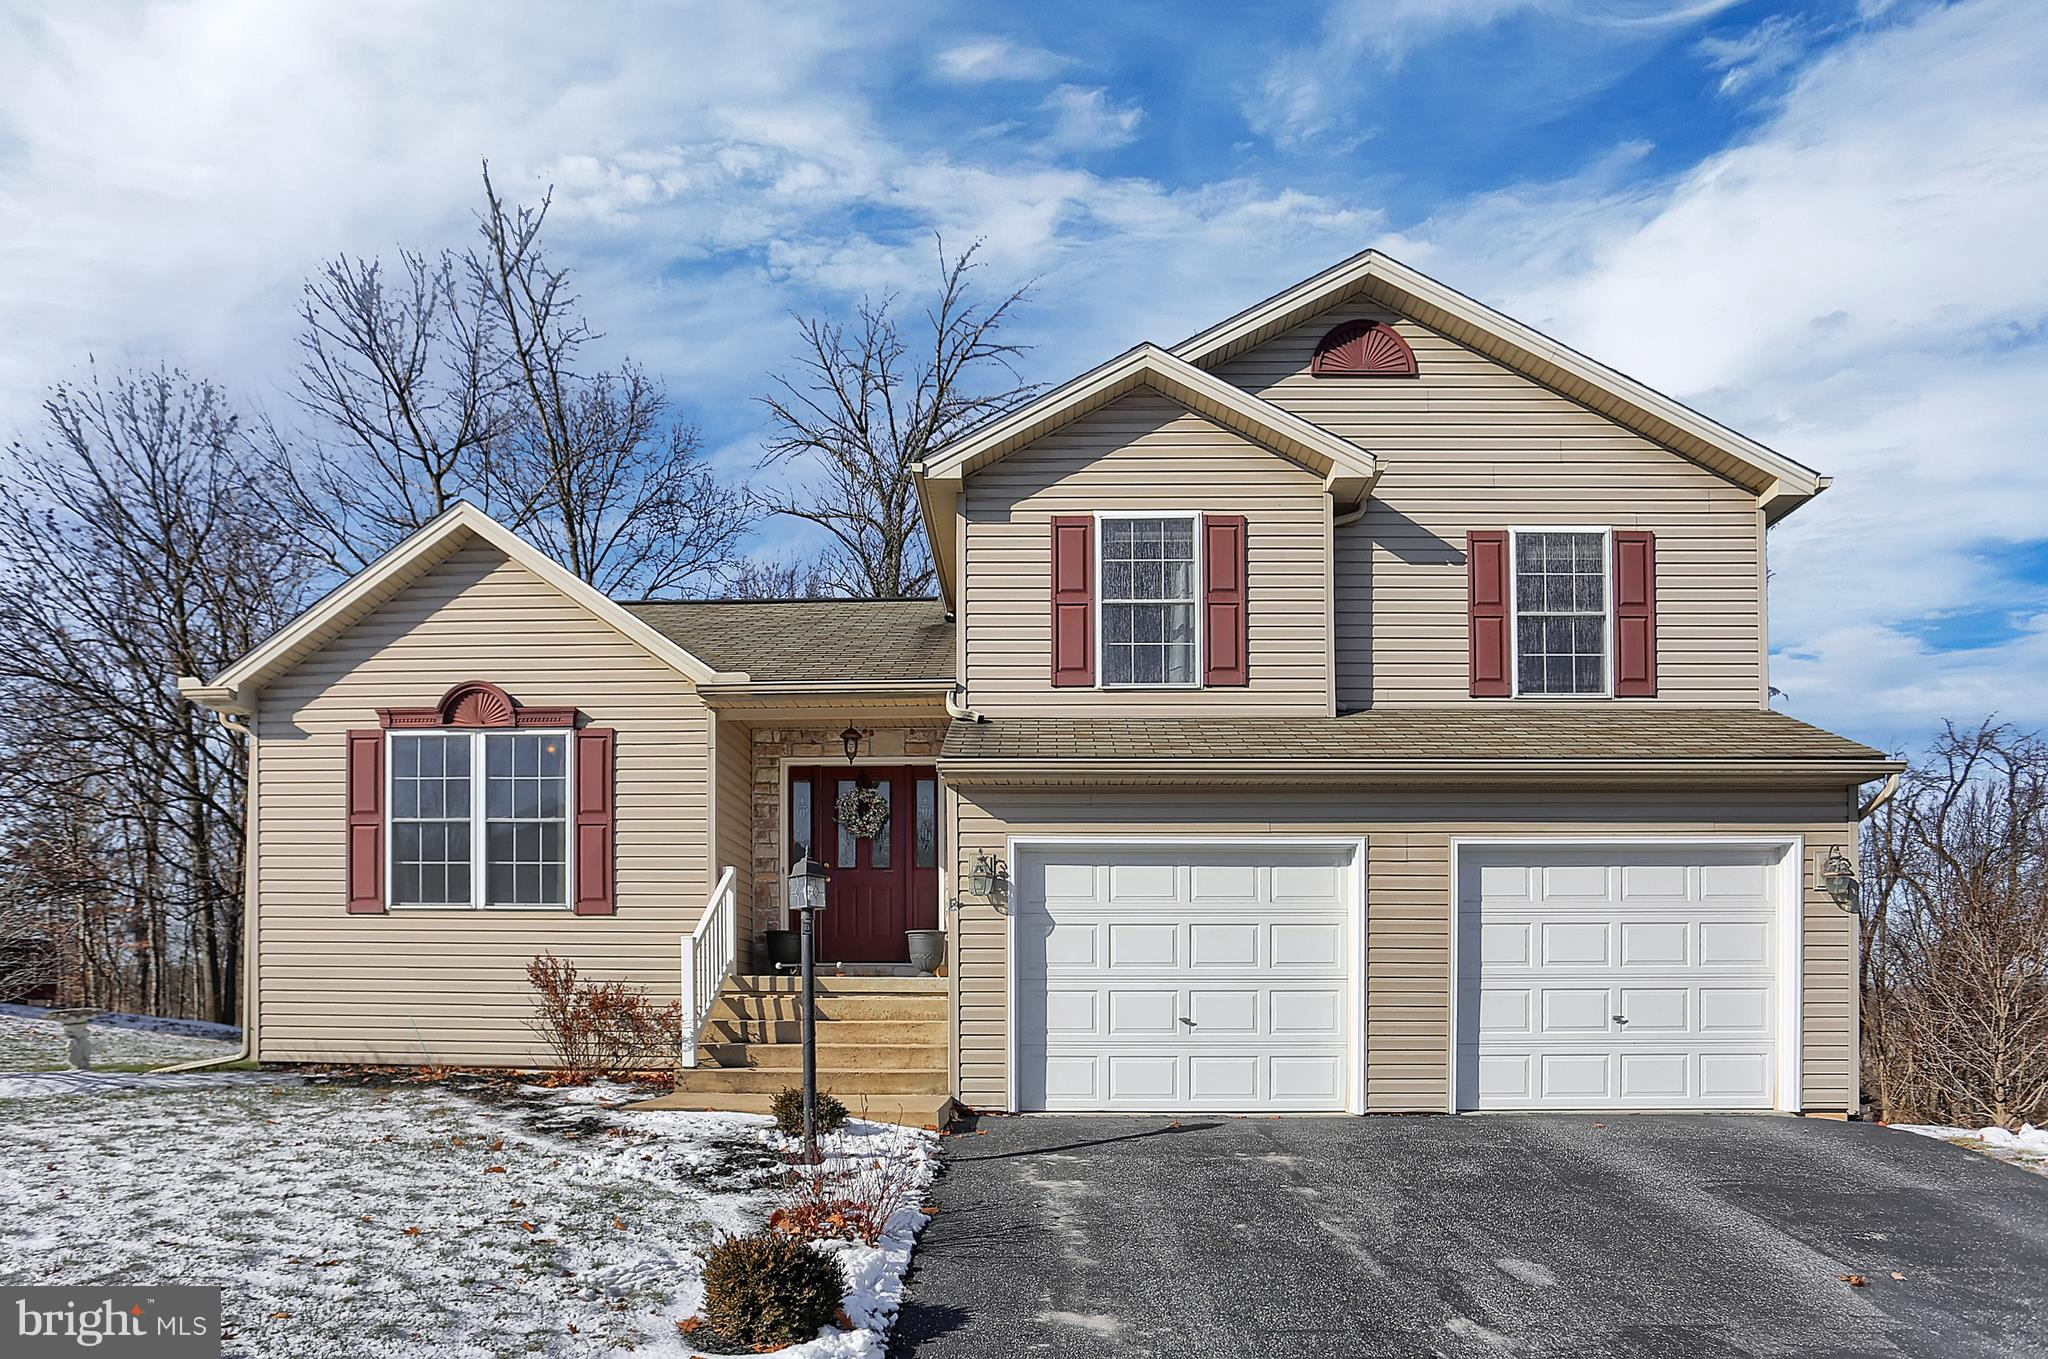 20 BITTERSWEET LANE, ETTERS, PA 17319